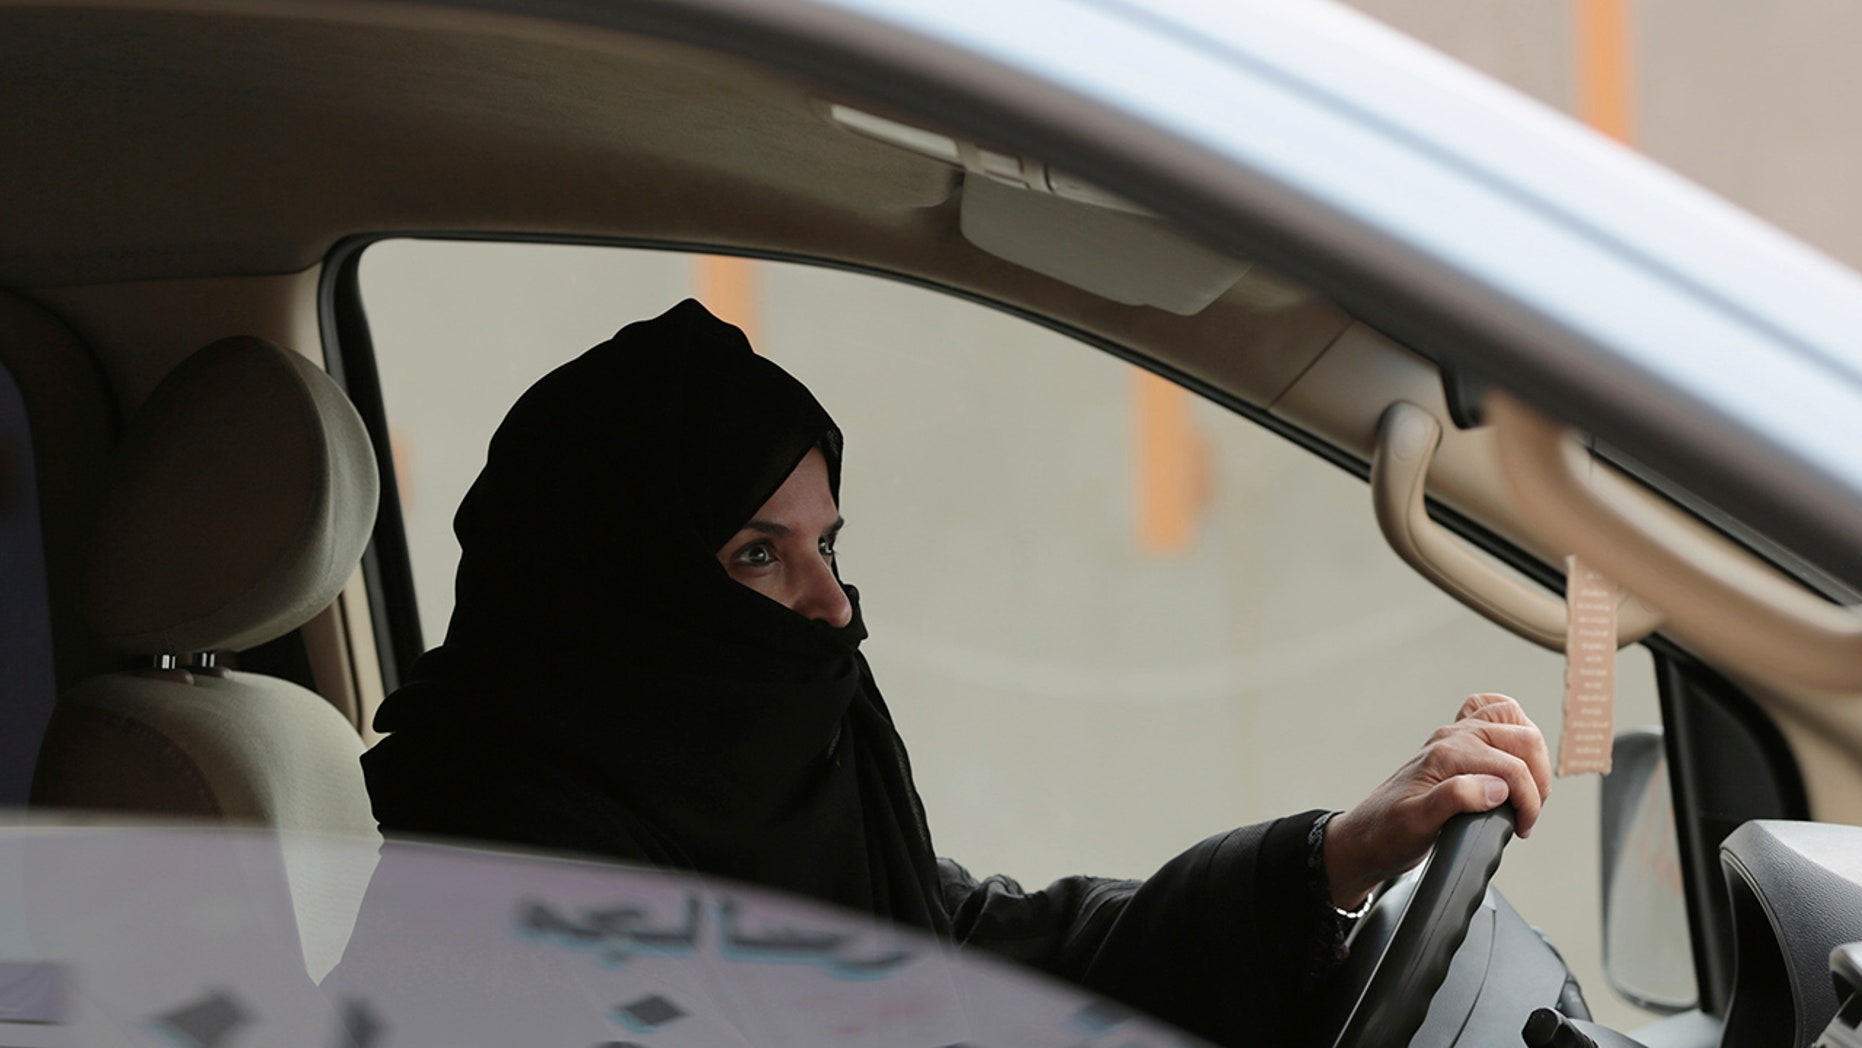 FILE - In this March 29, 2014 file photo, Aziza al-Yousef drives a car on a highway in Riyadh, Saudi Arabia, as part of a campaign to defy Saudi Arabia's then ban on women driving. Nearly a dozen Saudi women's rights activists, most of them imprisoned, have attended their third court session Wednesday, April 3, 2019, and were told their trials will continue for at least two more weeks. Meanwhile, three women who were granted temporary release last week, among them al-Yousef and Eman al-Najfan, were told their next court date would take place after the Muslim holy month of Ramadan, which coincides with early June. (AP Photo/Hasan Jamali, File)